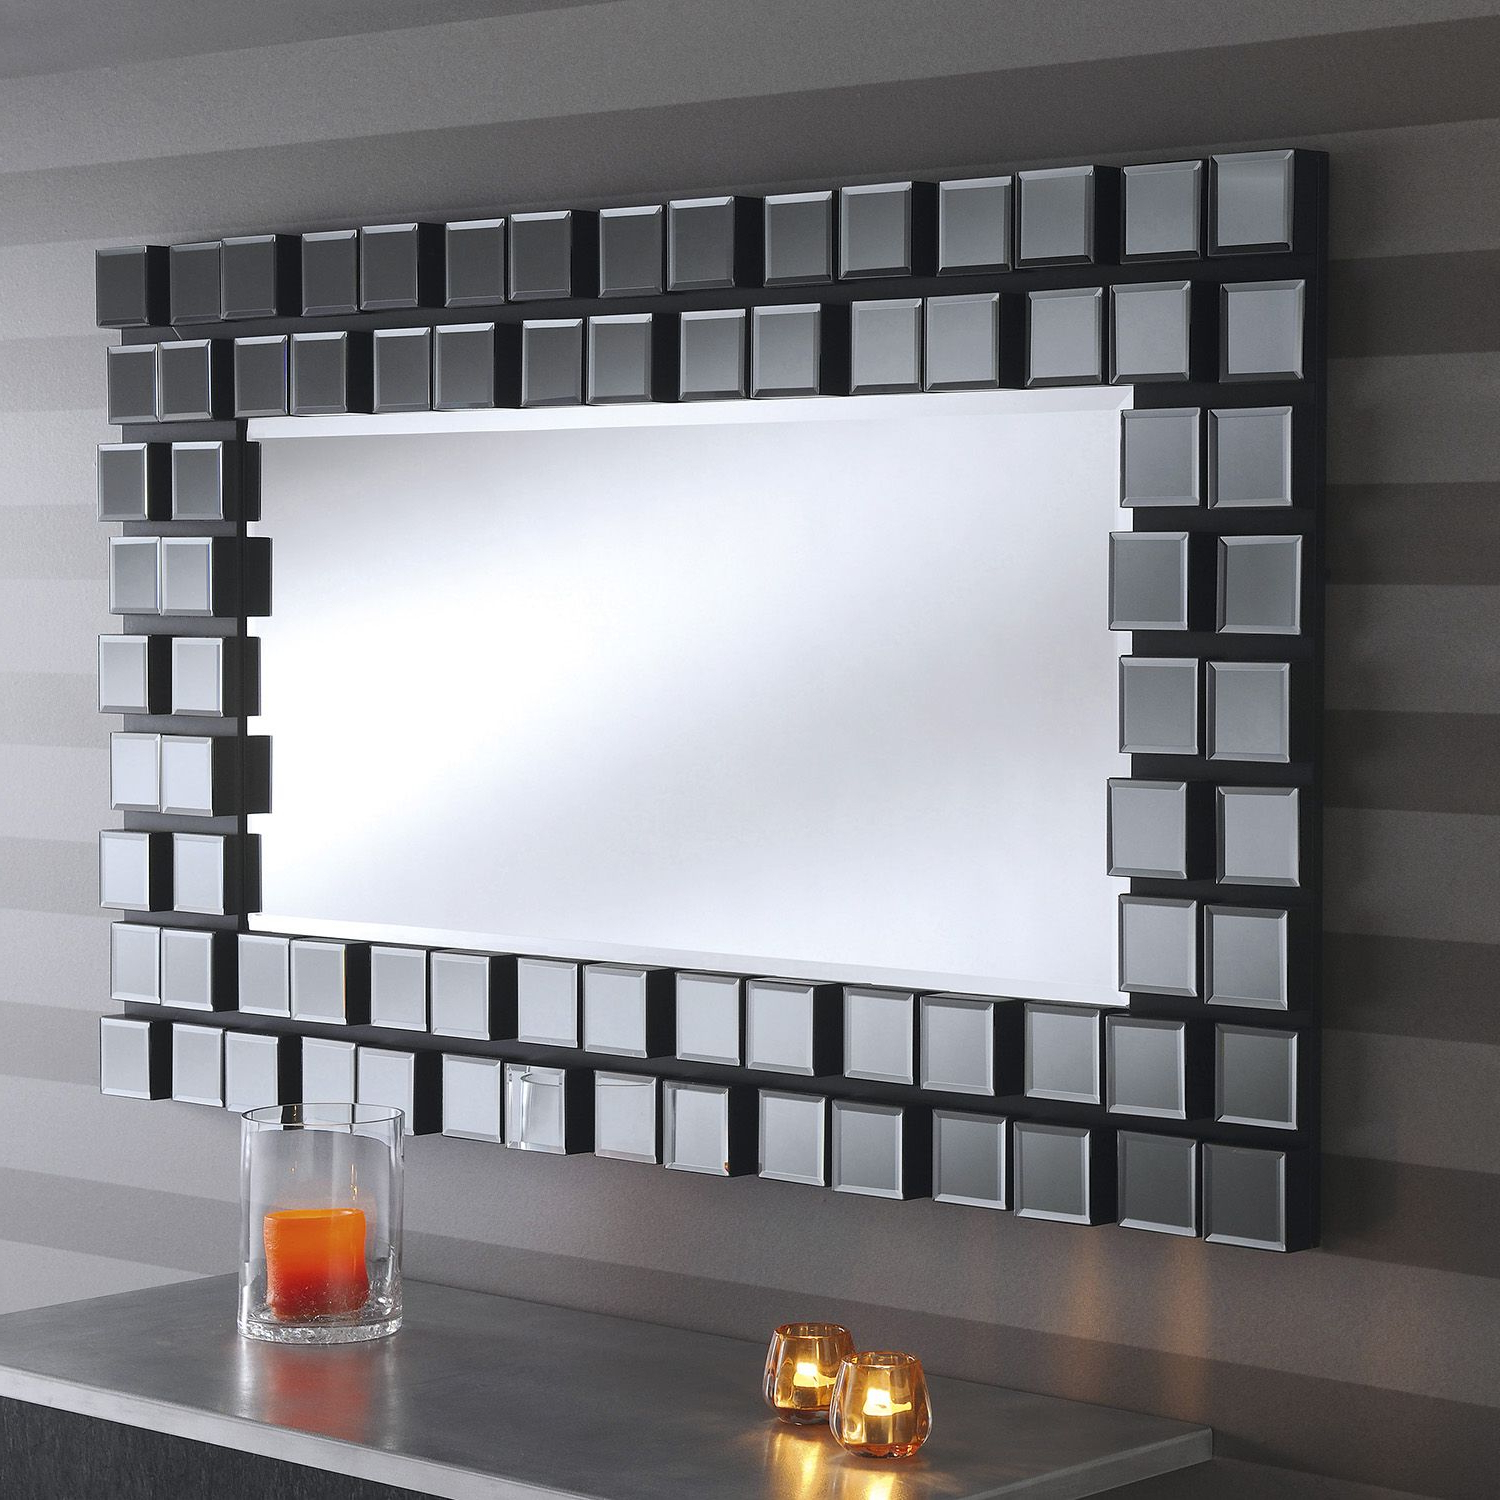 Yearn Pixel Wall Mirror In Grey – Next Day Delivery Yearn Pixel Wall Inside Recent Gray Wall Mirrors (Gallery 19 of 20)